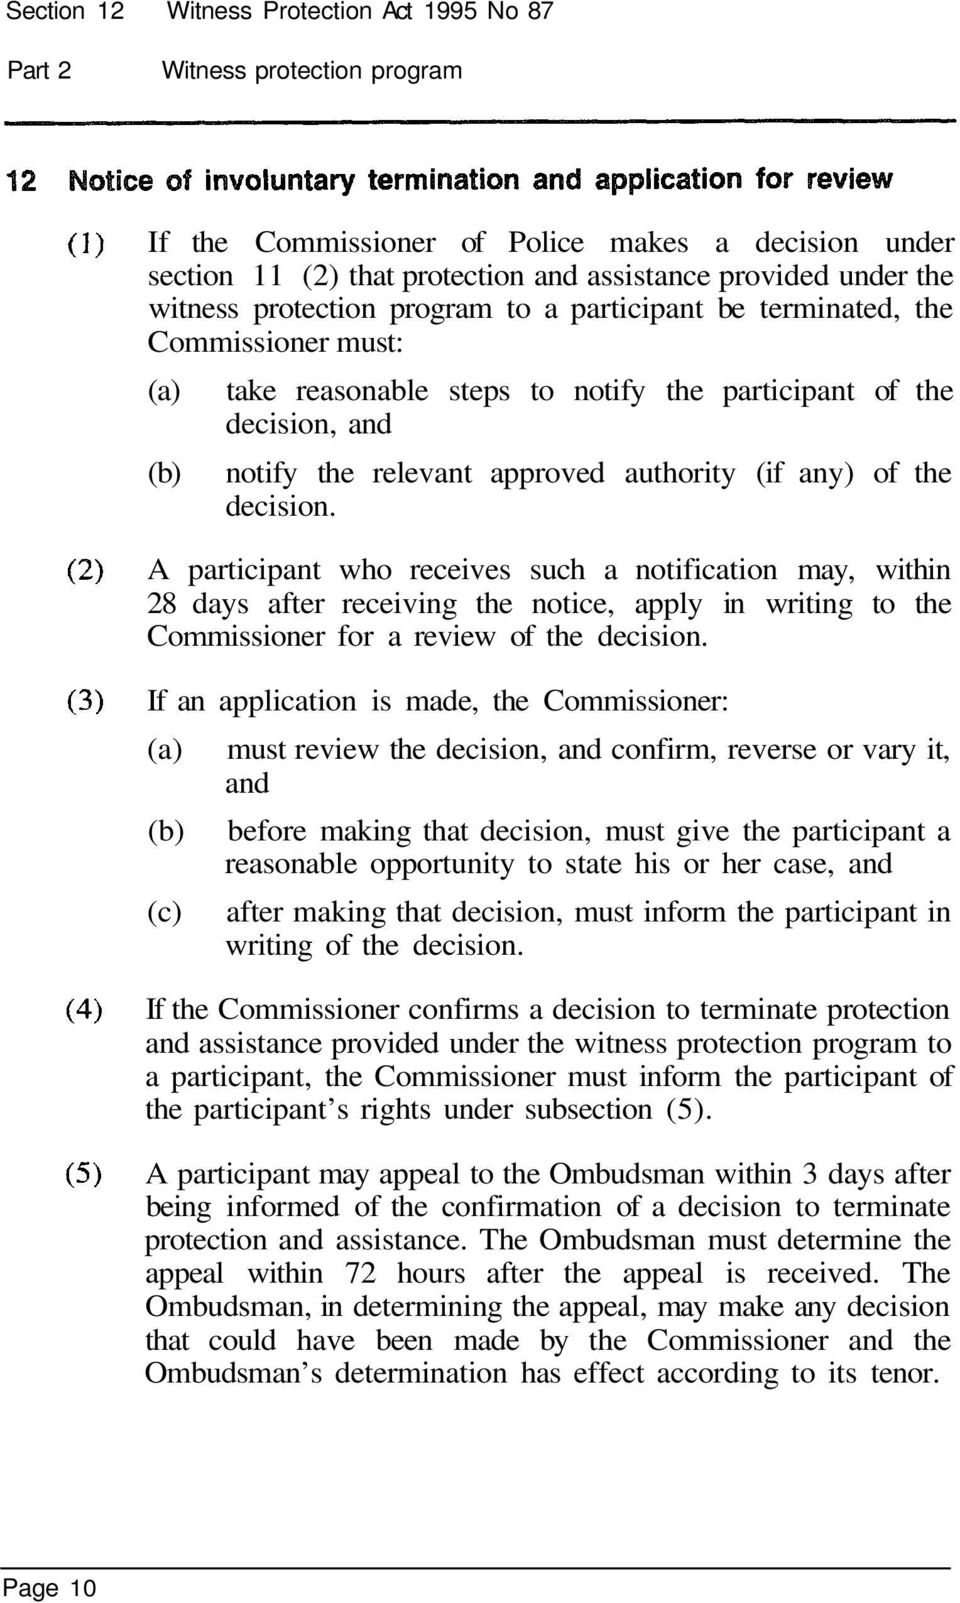 of the decision. A participant who receives such a notification may, within 28 days after receiving the notice, apply in writing to the Commissioner for a review of the decision.